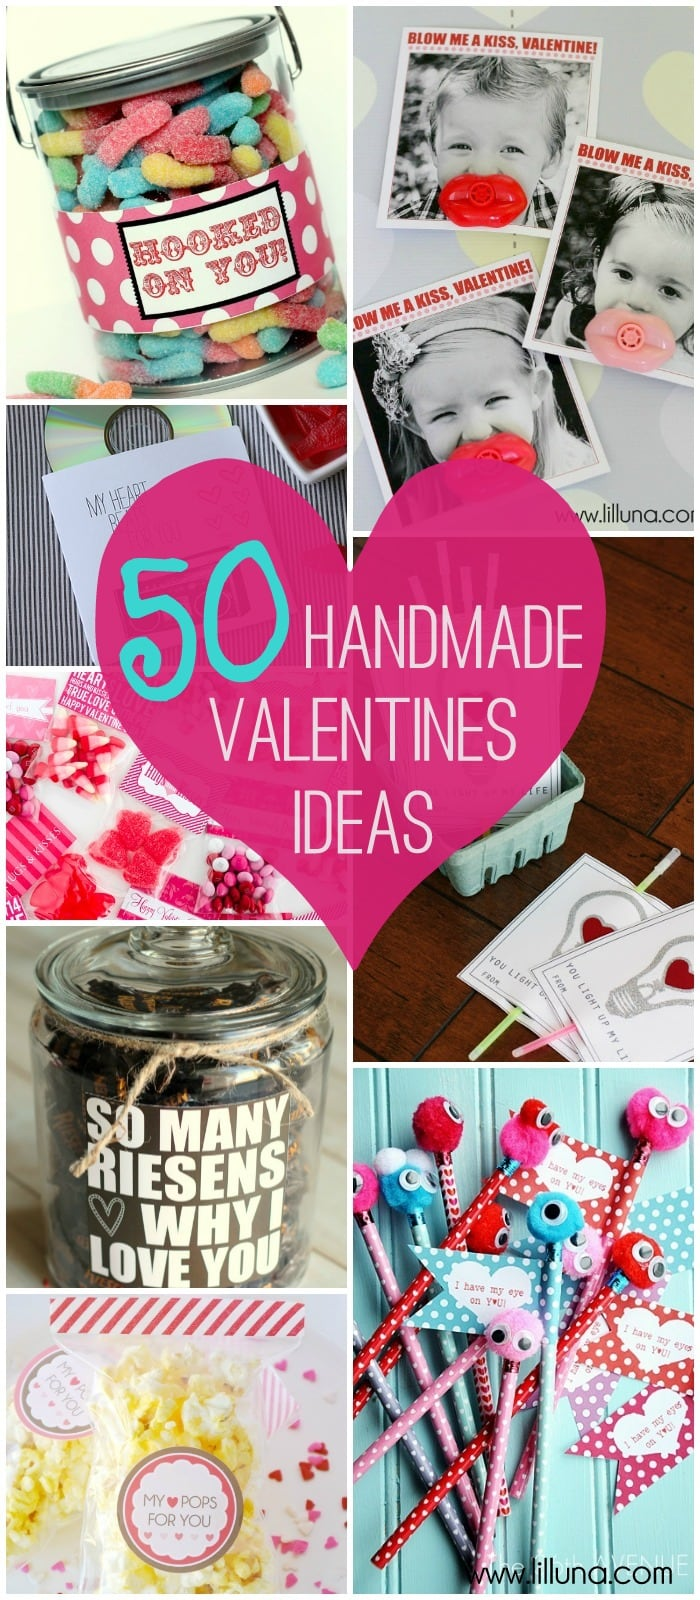 50+ Great Valentine's Ideas on { lilluna.com } #valentines